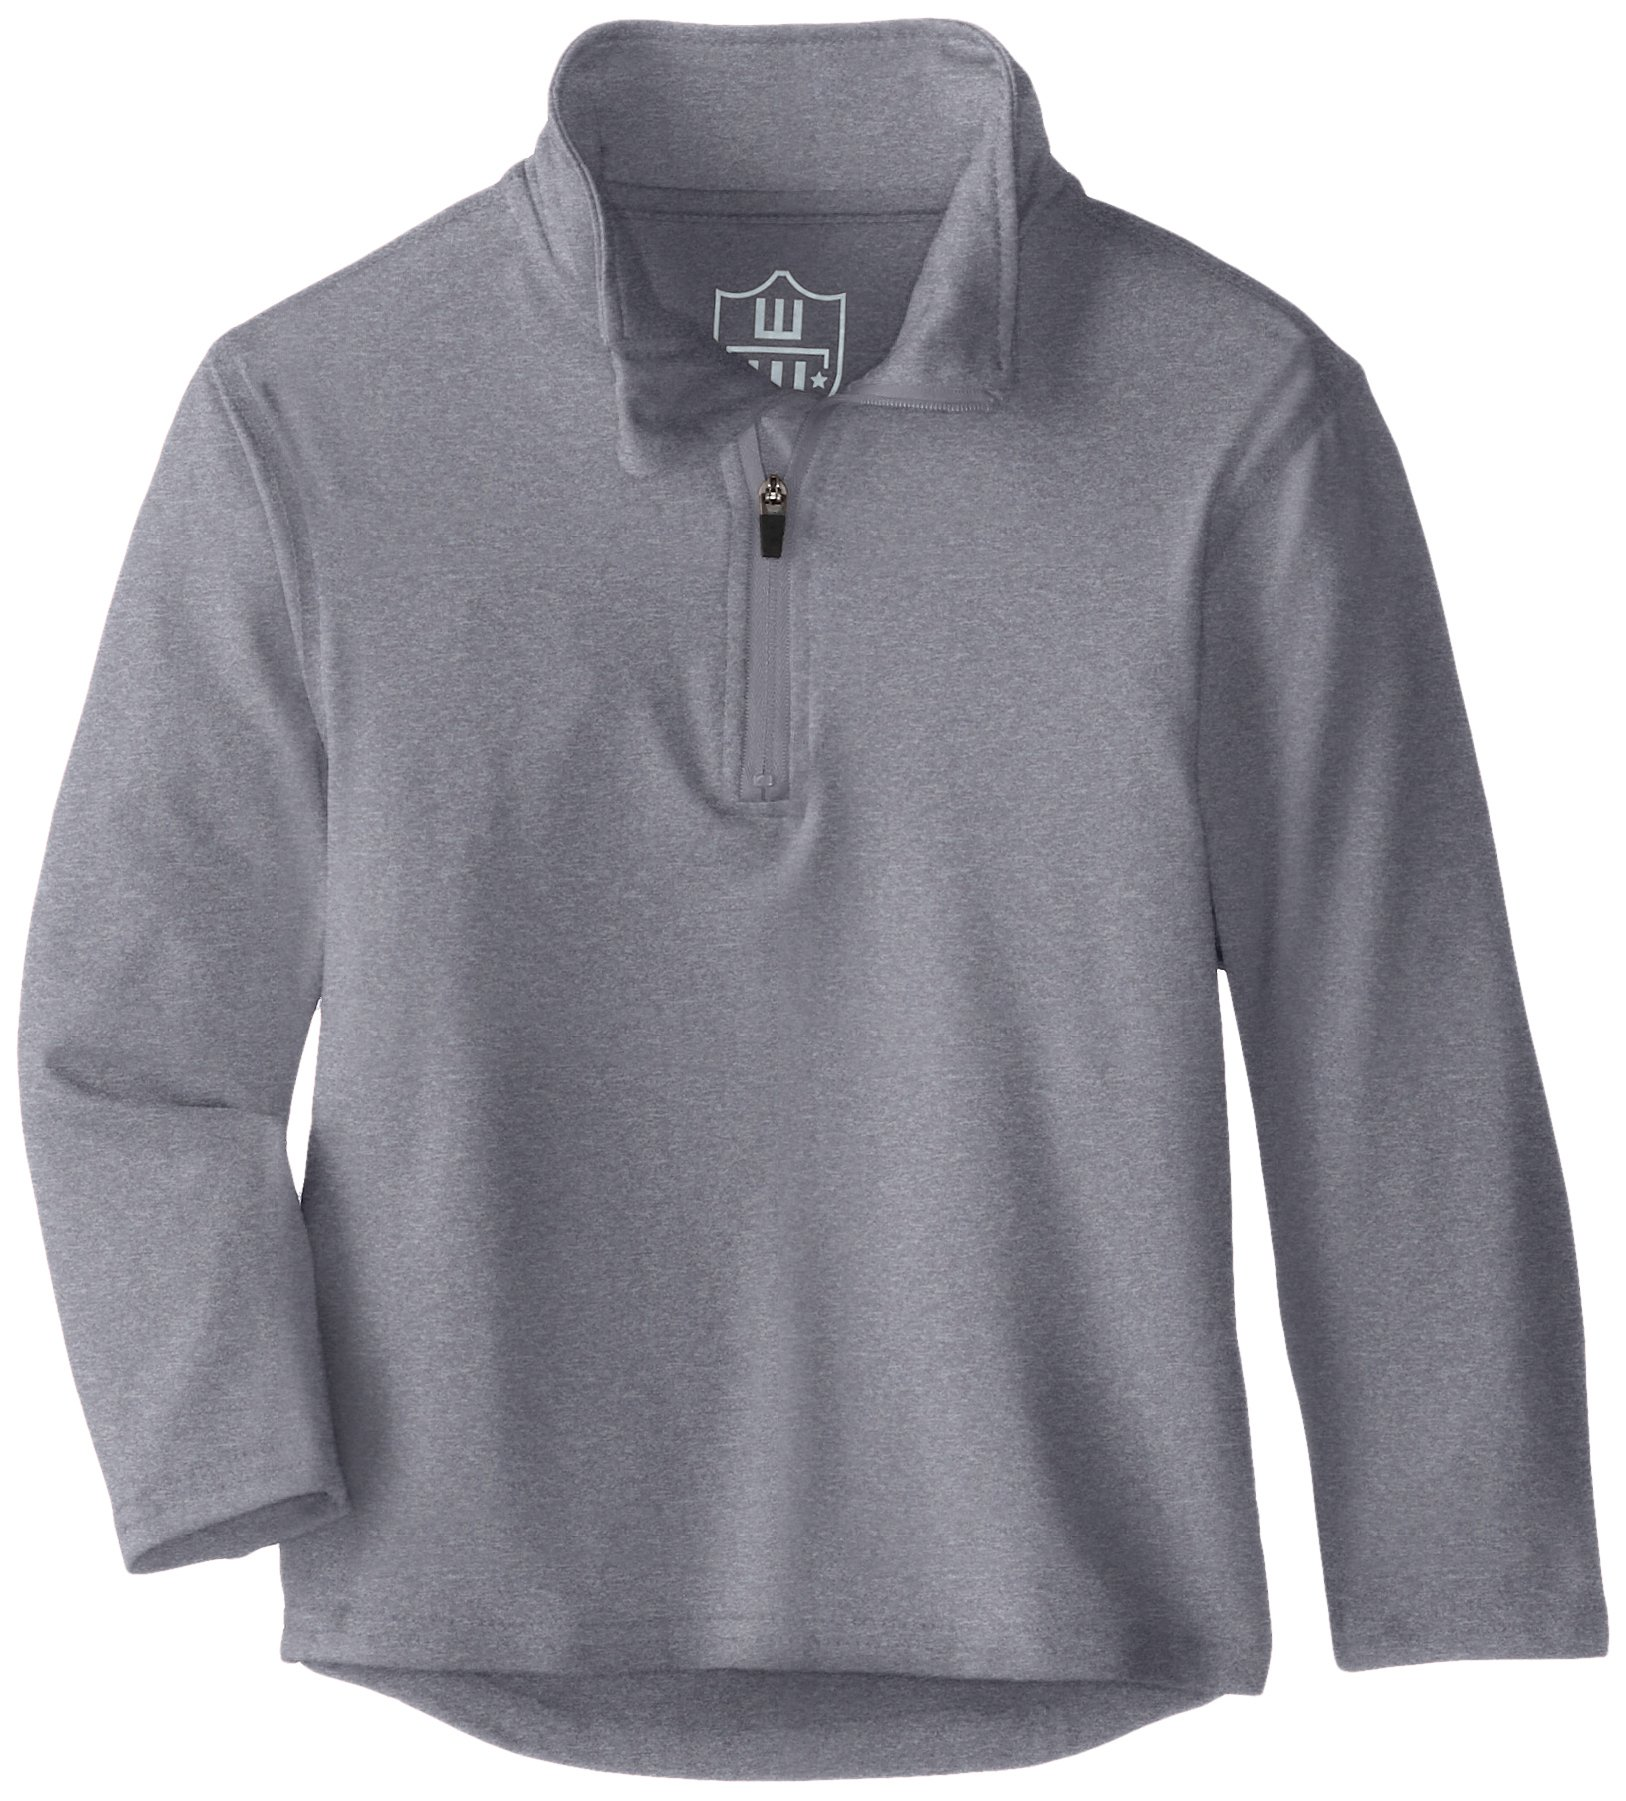 Wes and Willy Boys Performance Pullover Quarter Zip Top, Heather XL